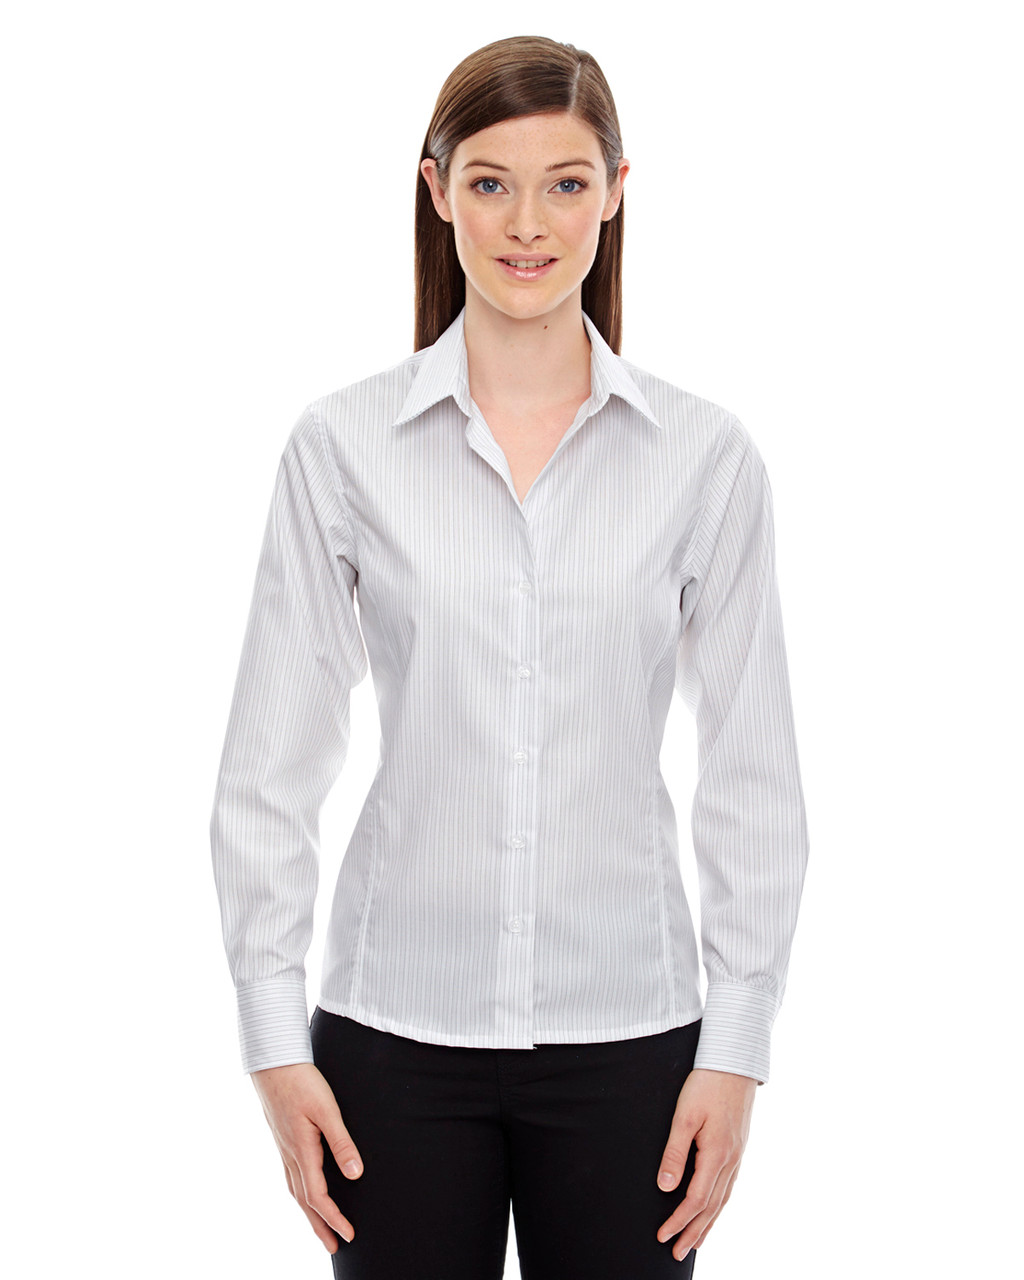 White - 78674 North End Ladies' Boardwalk Wrinkle-Free Two-Ply 80's Cotton Striped Tape Shirt | BlankClothing.ca